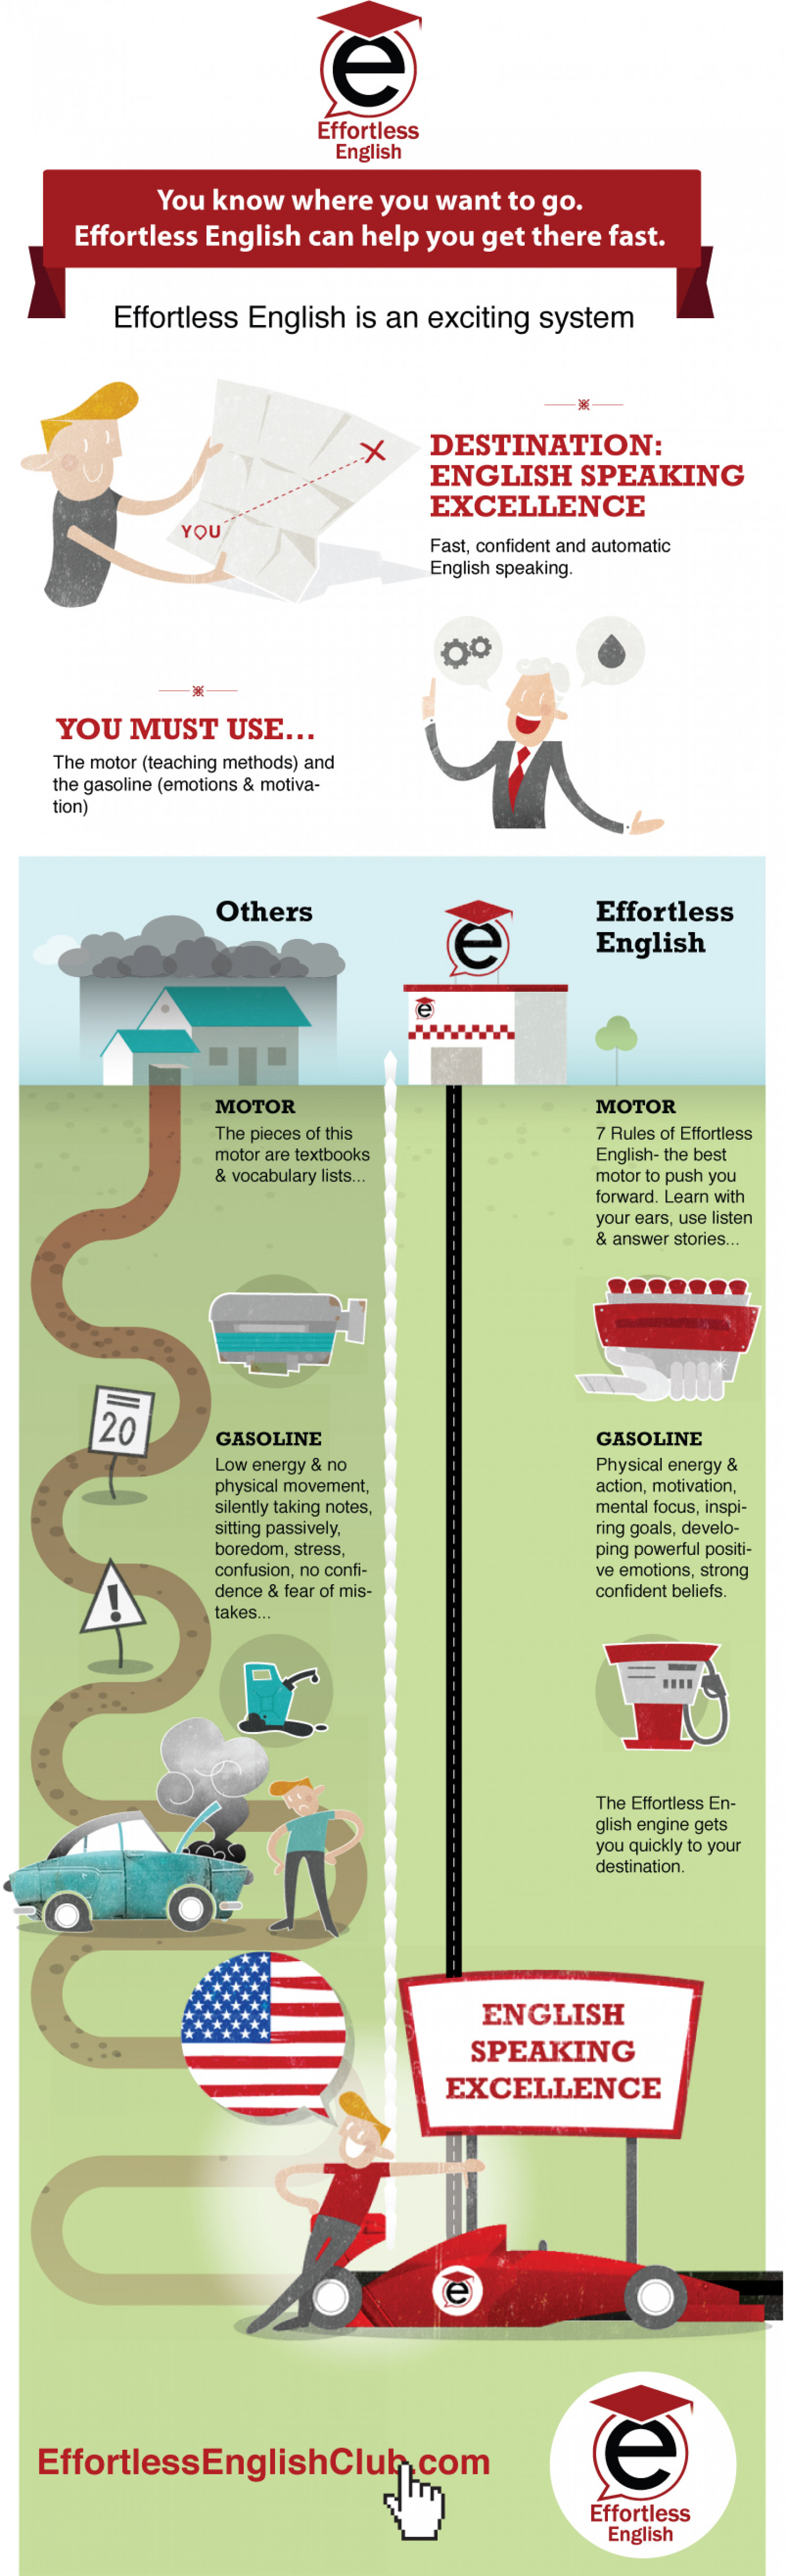 Effortless English can help you get there fast Infographic